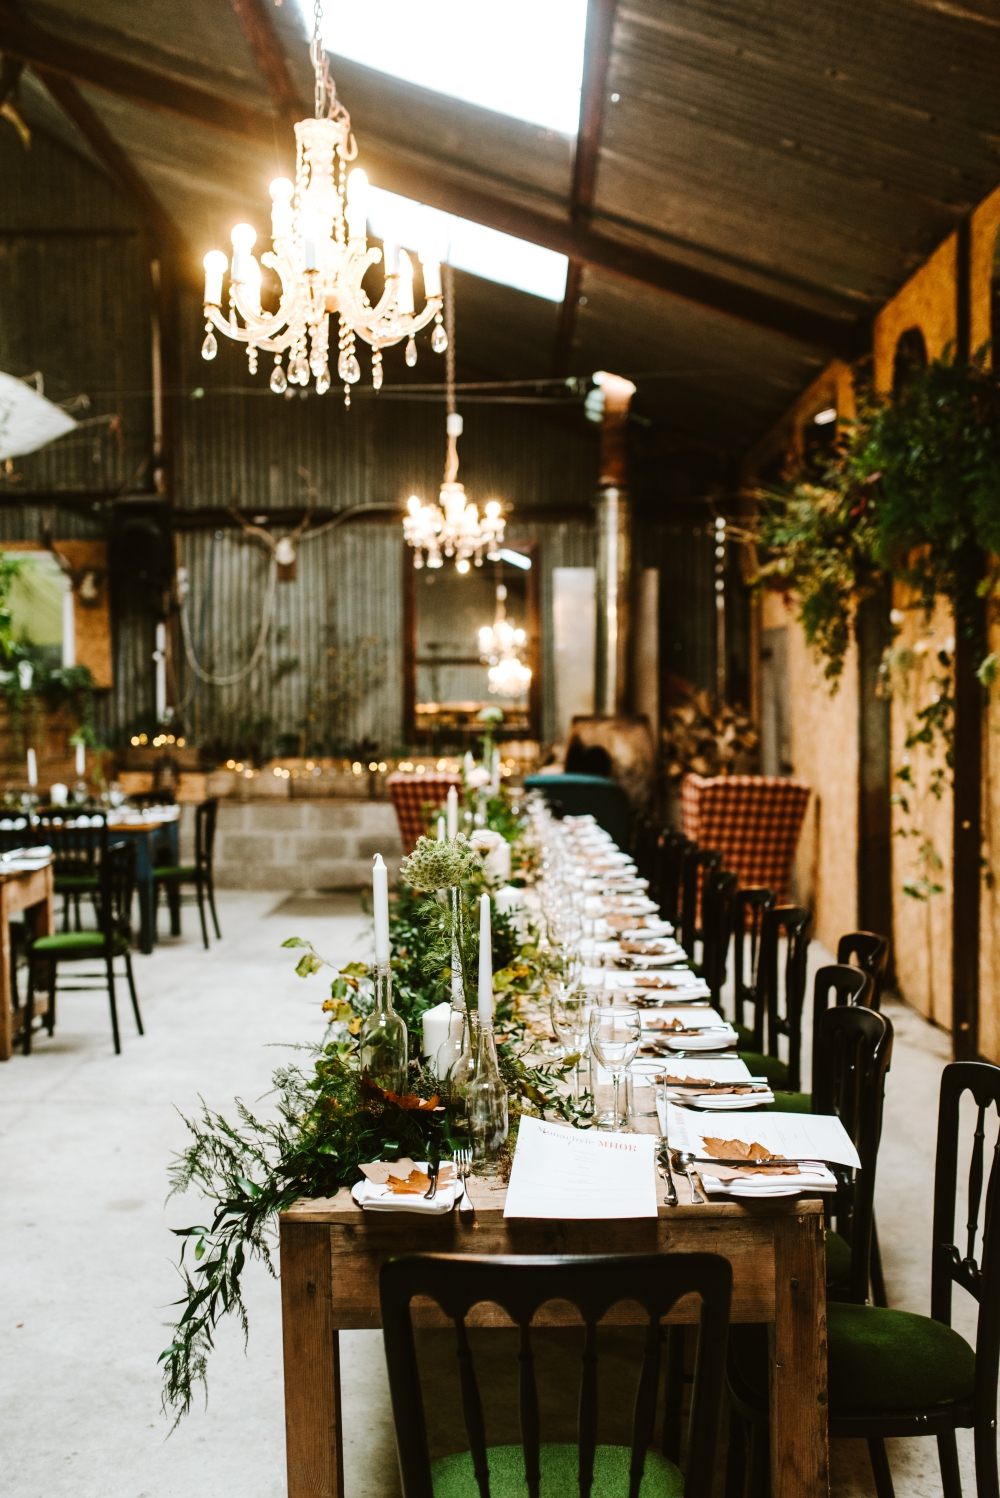 Botanical Barn Wedding In Scotland With Abundance Of ...